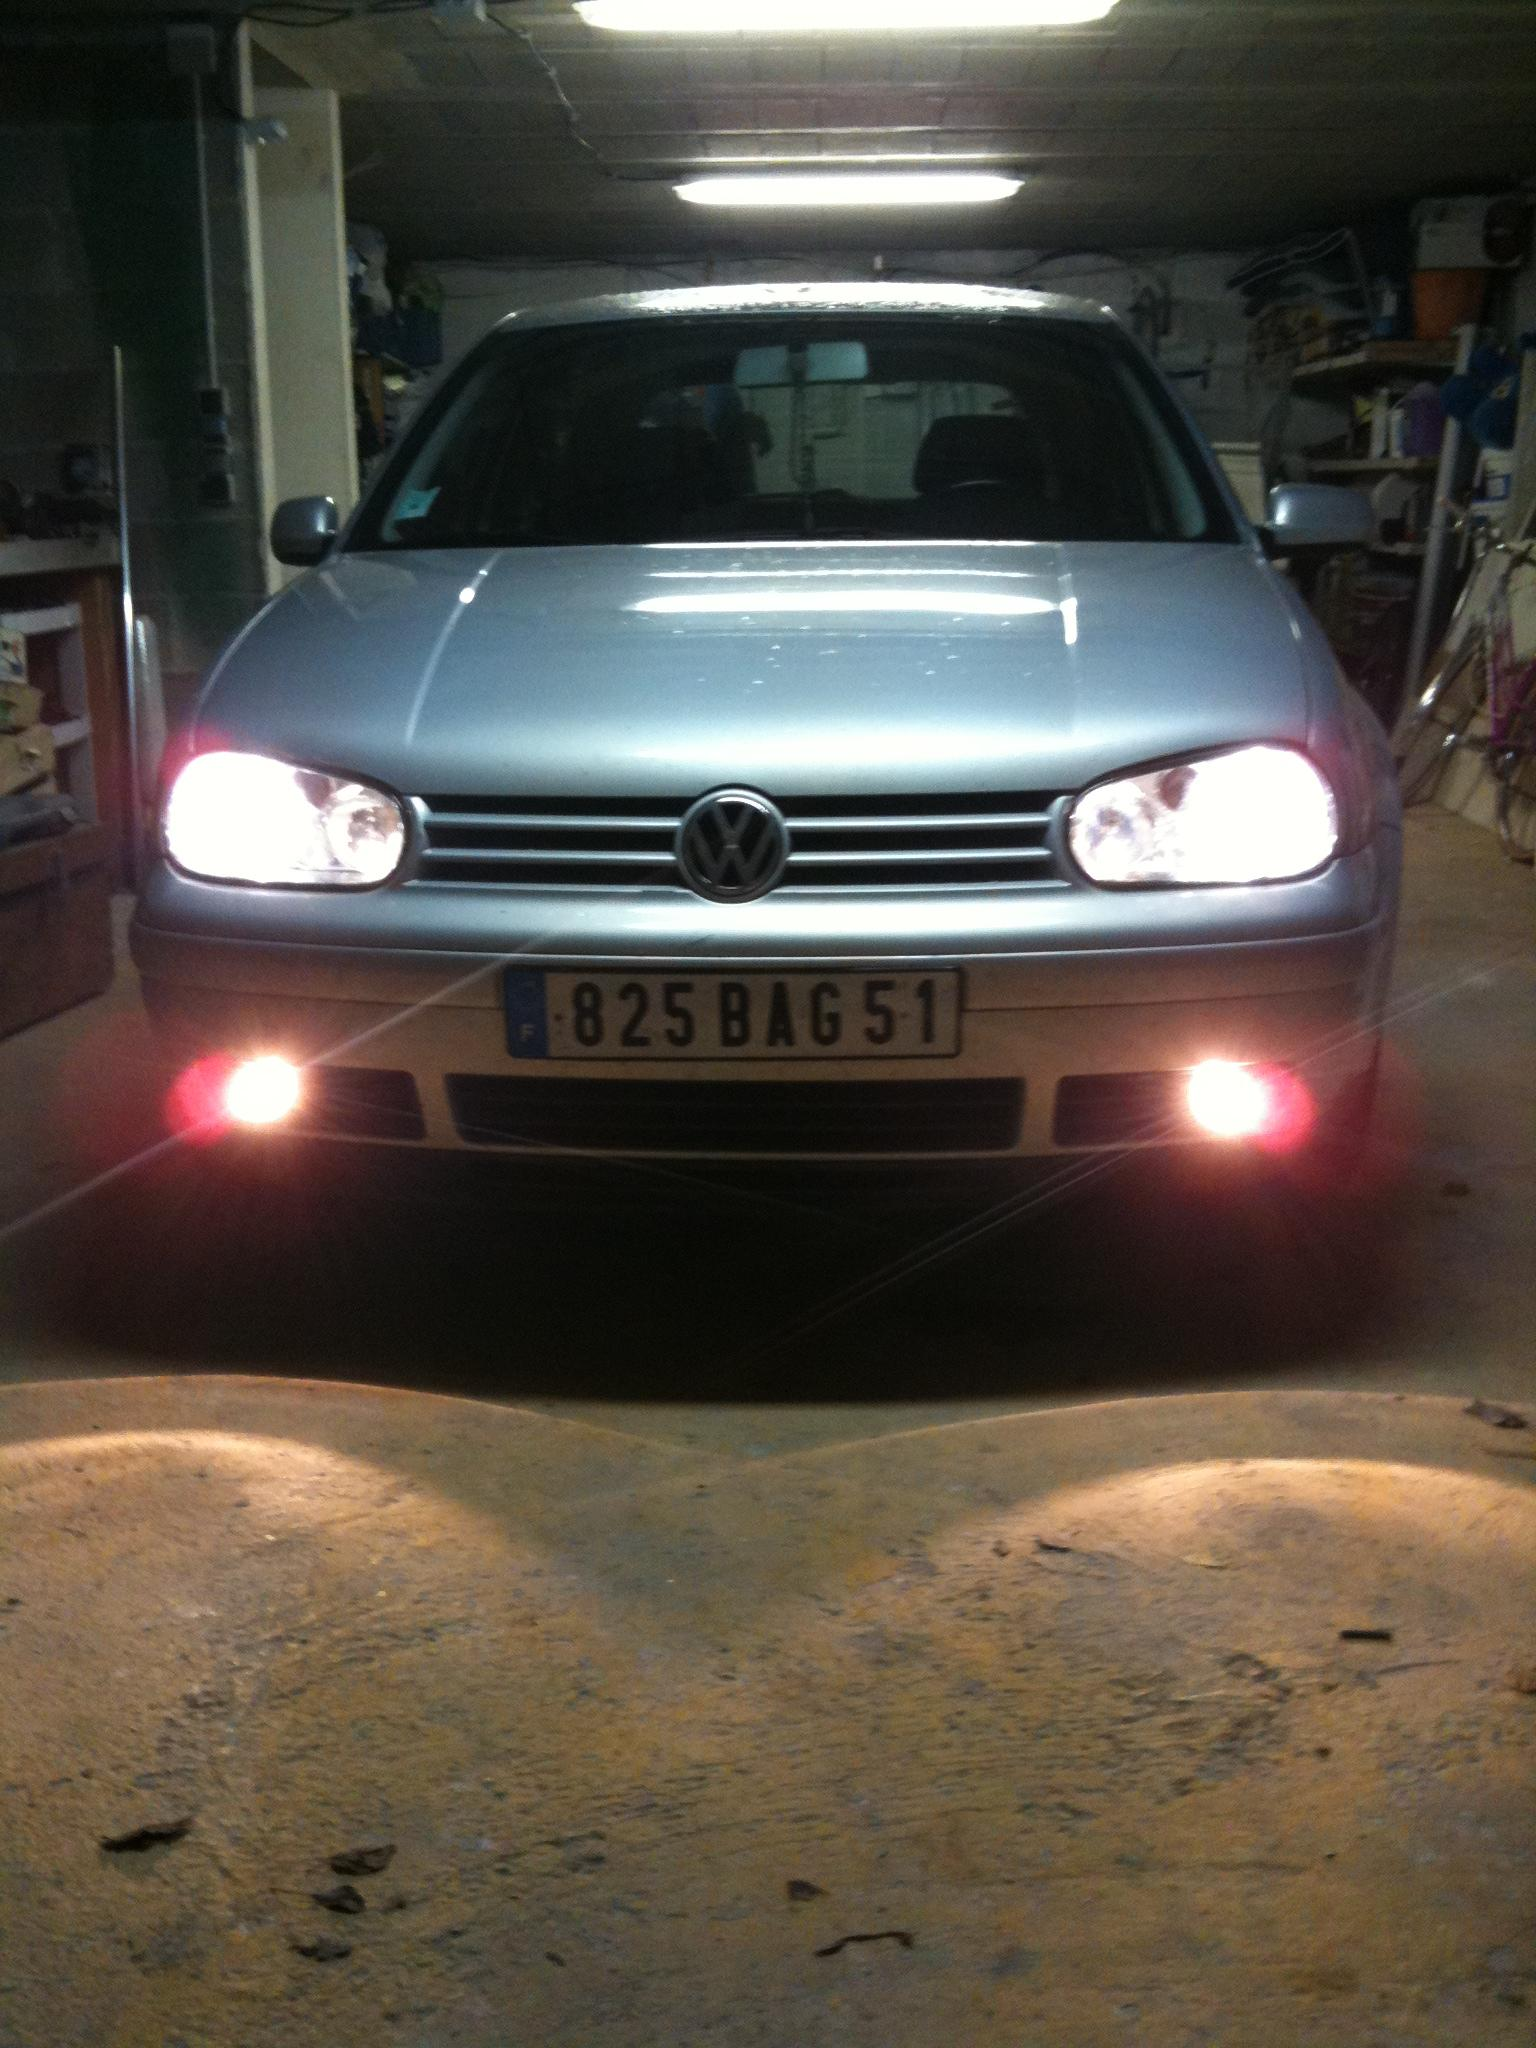 golf iv tdi 110 de soso 93   garage des golf iv tdi 110